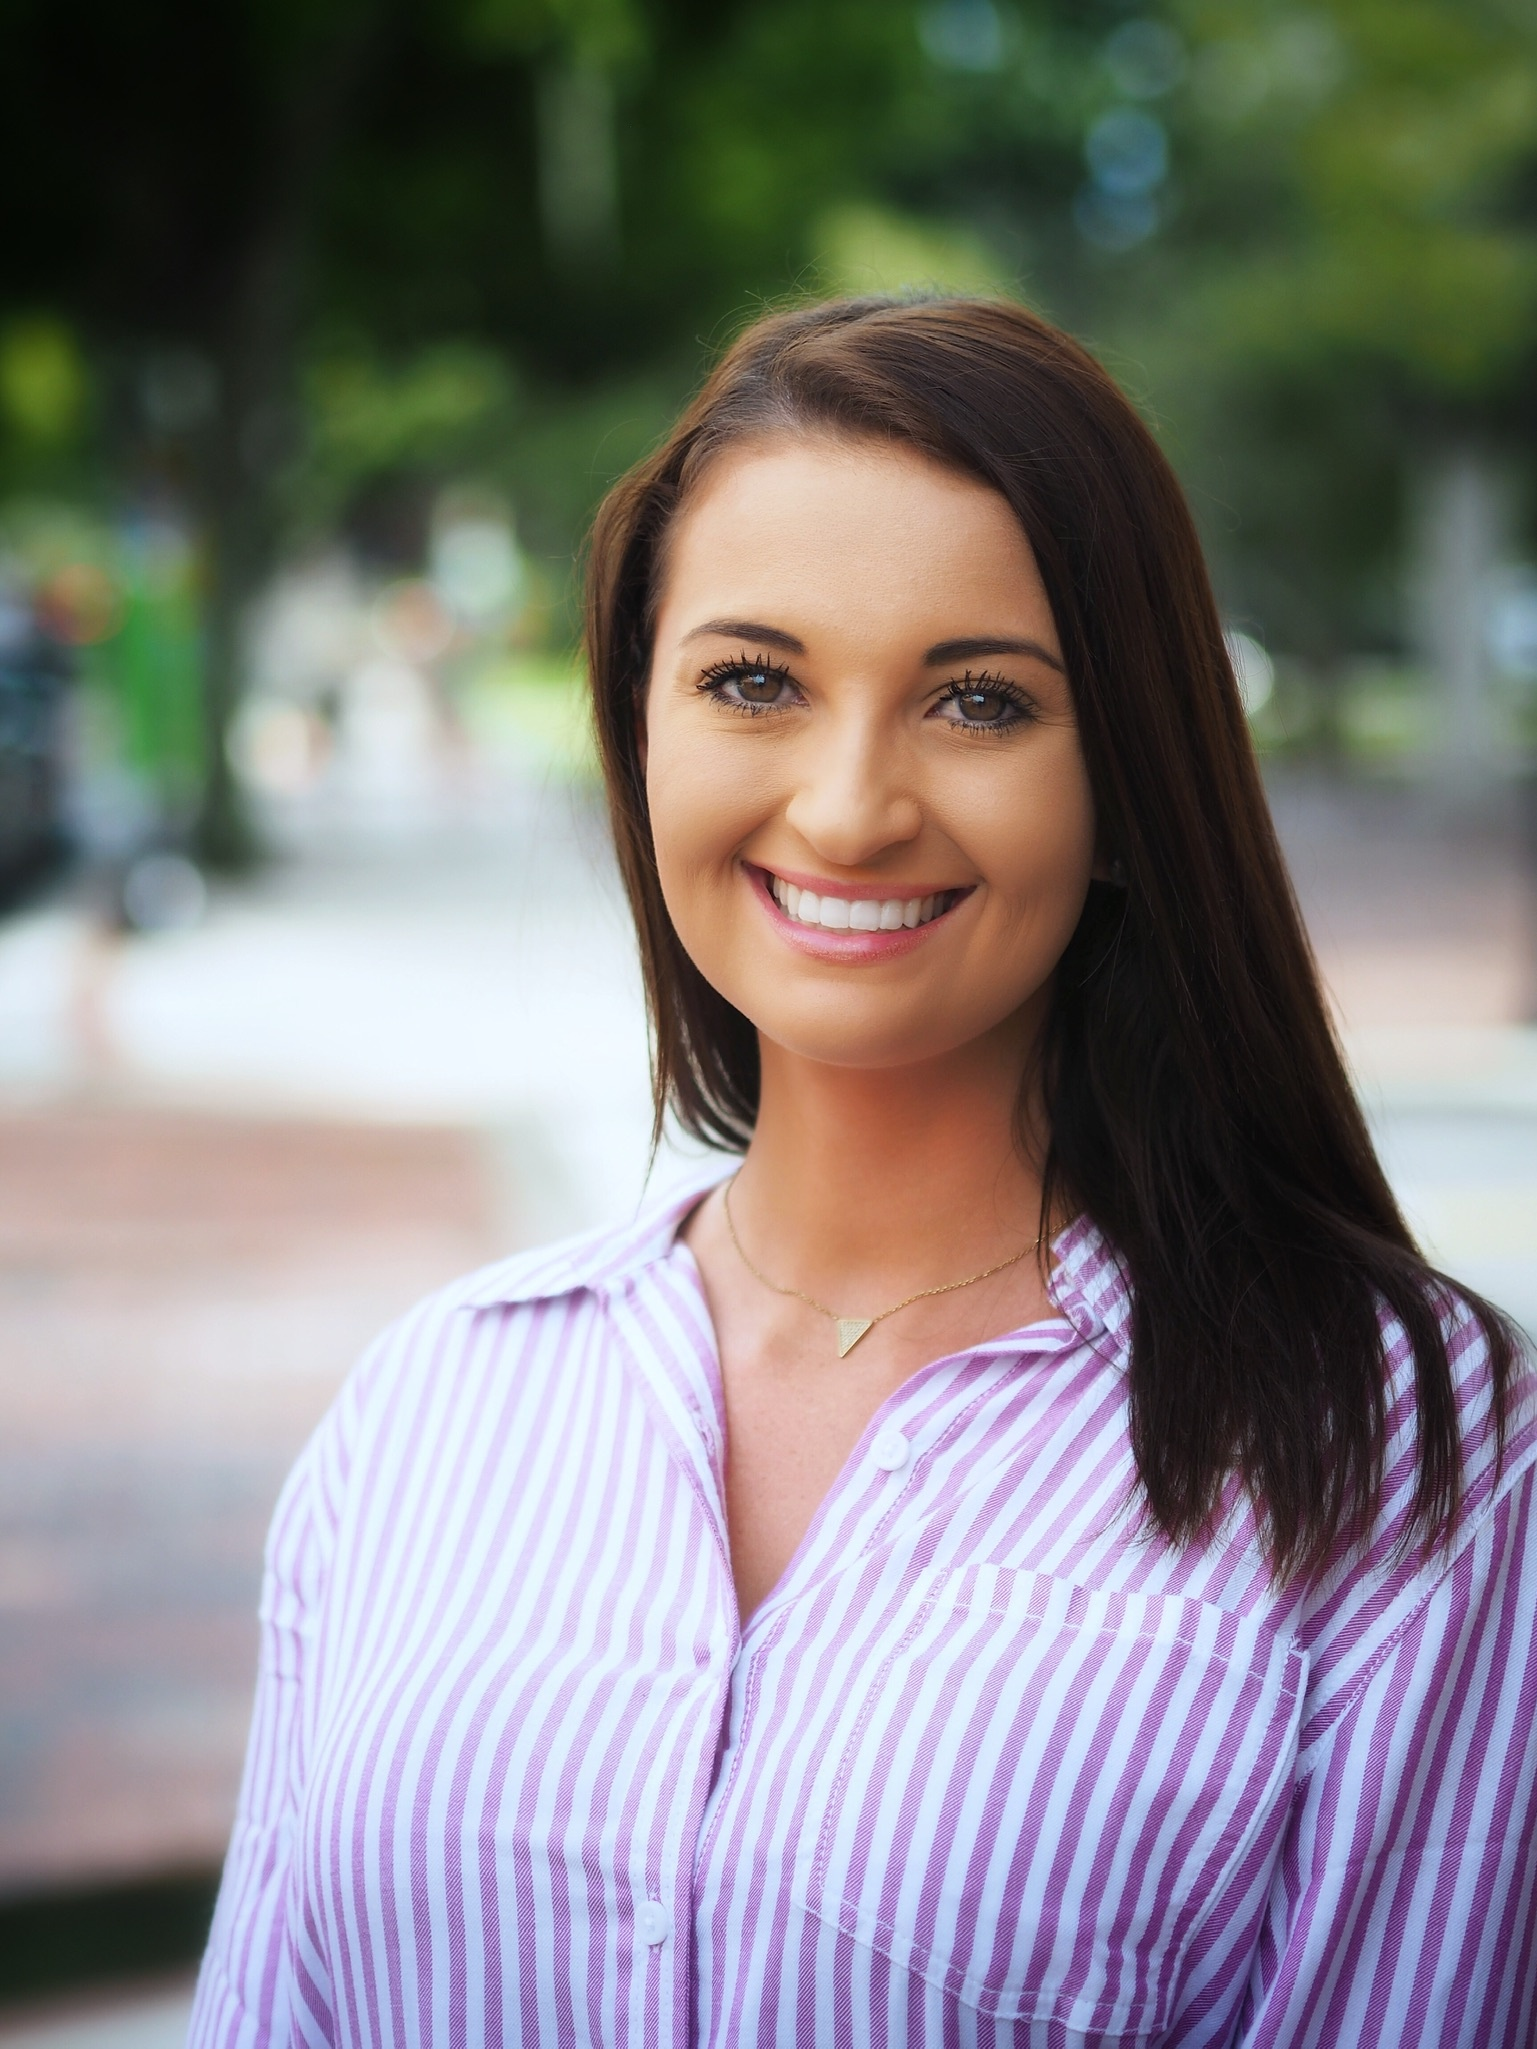 Chloe Smith Transaction Coordinator Focus Group Florida Keller Williams Realty